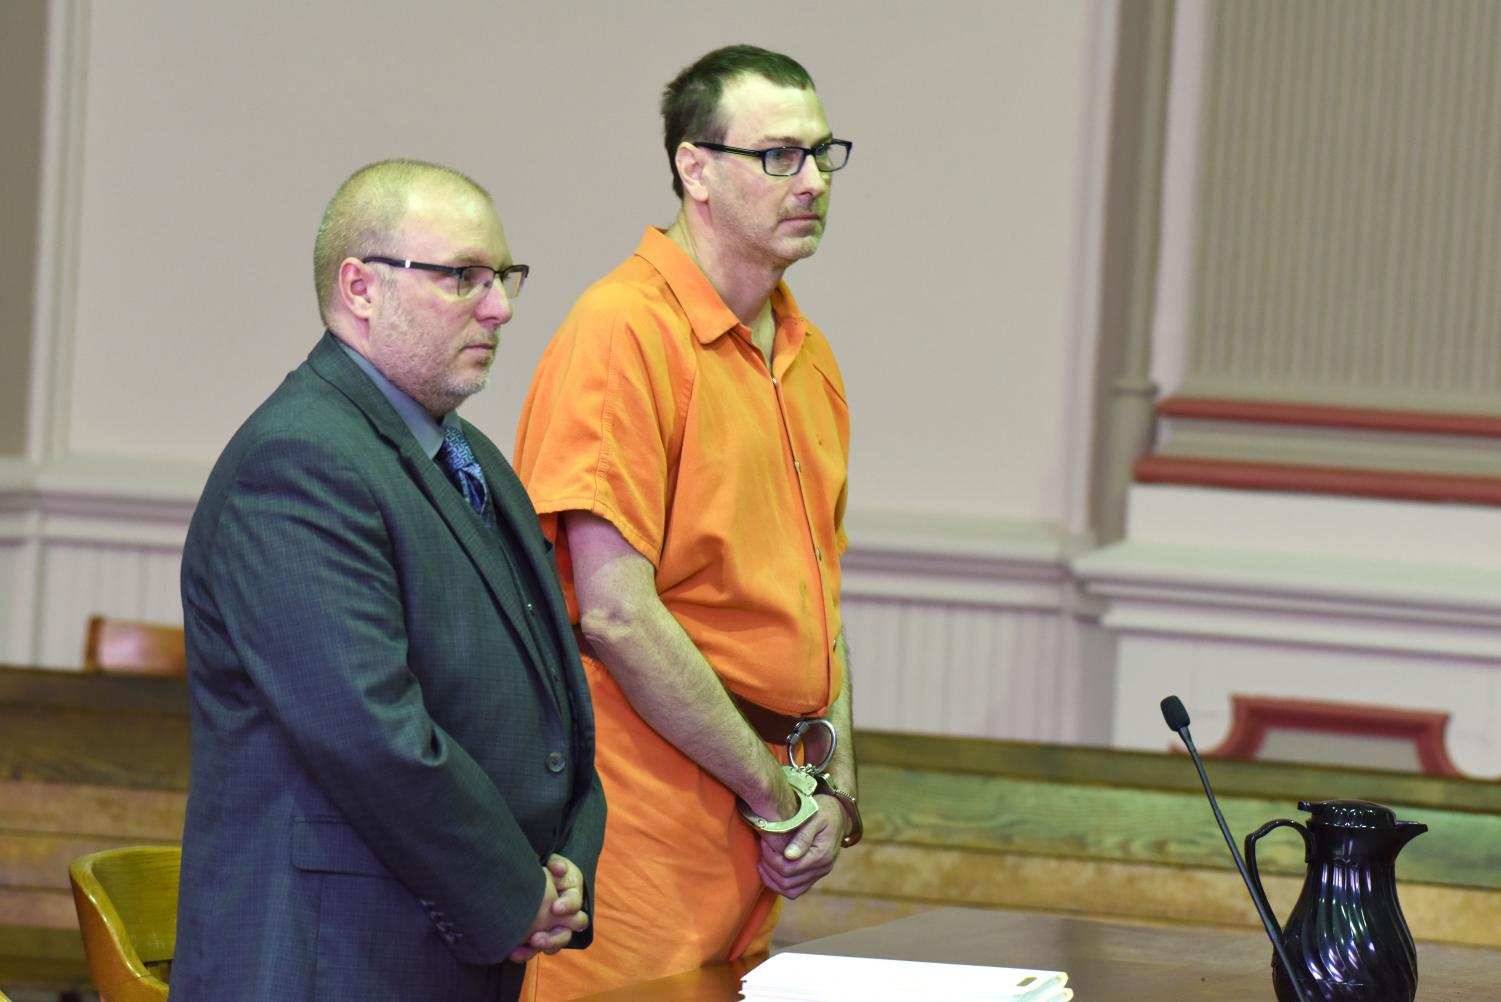 Larry Mitchell pleads guilty to reduced charges after being accused of raping his ex-wife during his hearing on June 3.